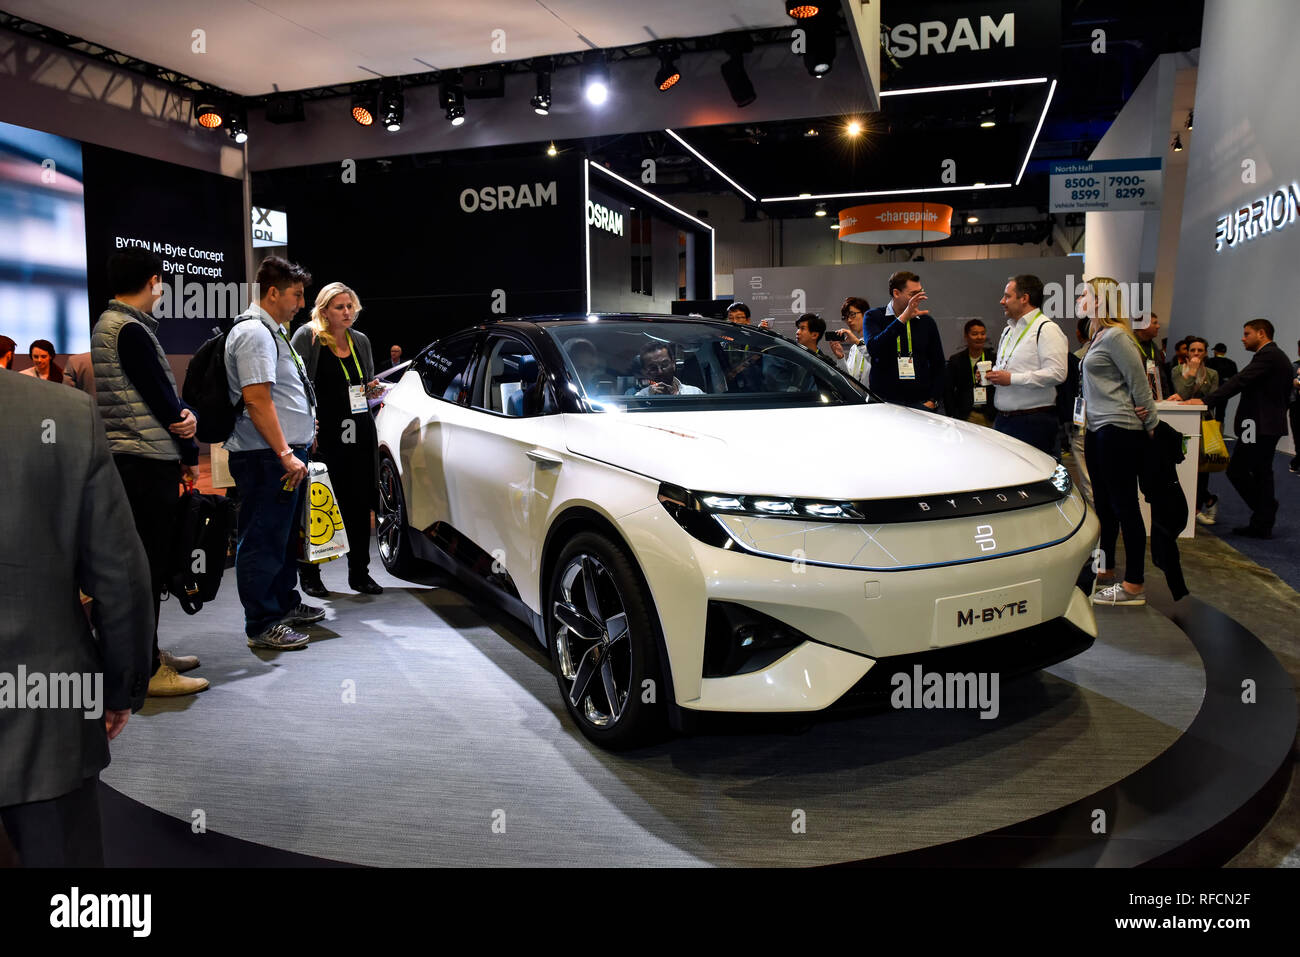 BYTON, M-Byte Concept Car at the 2019 CES Consumer Electronics Show in Las Vegas, Nevada - Stock Image